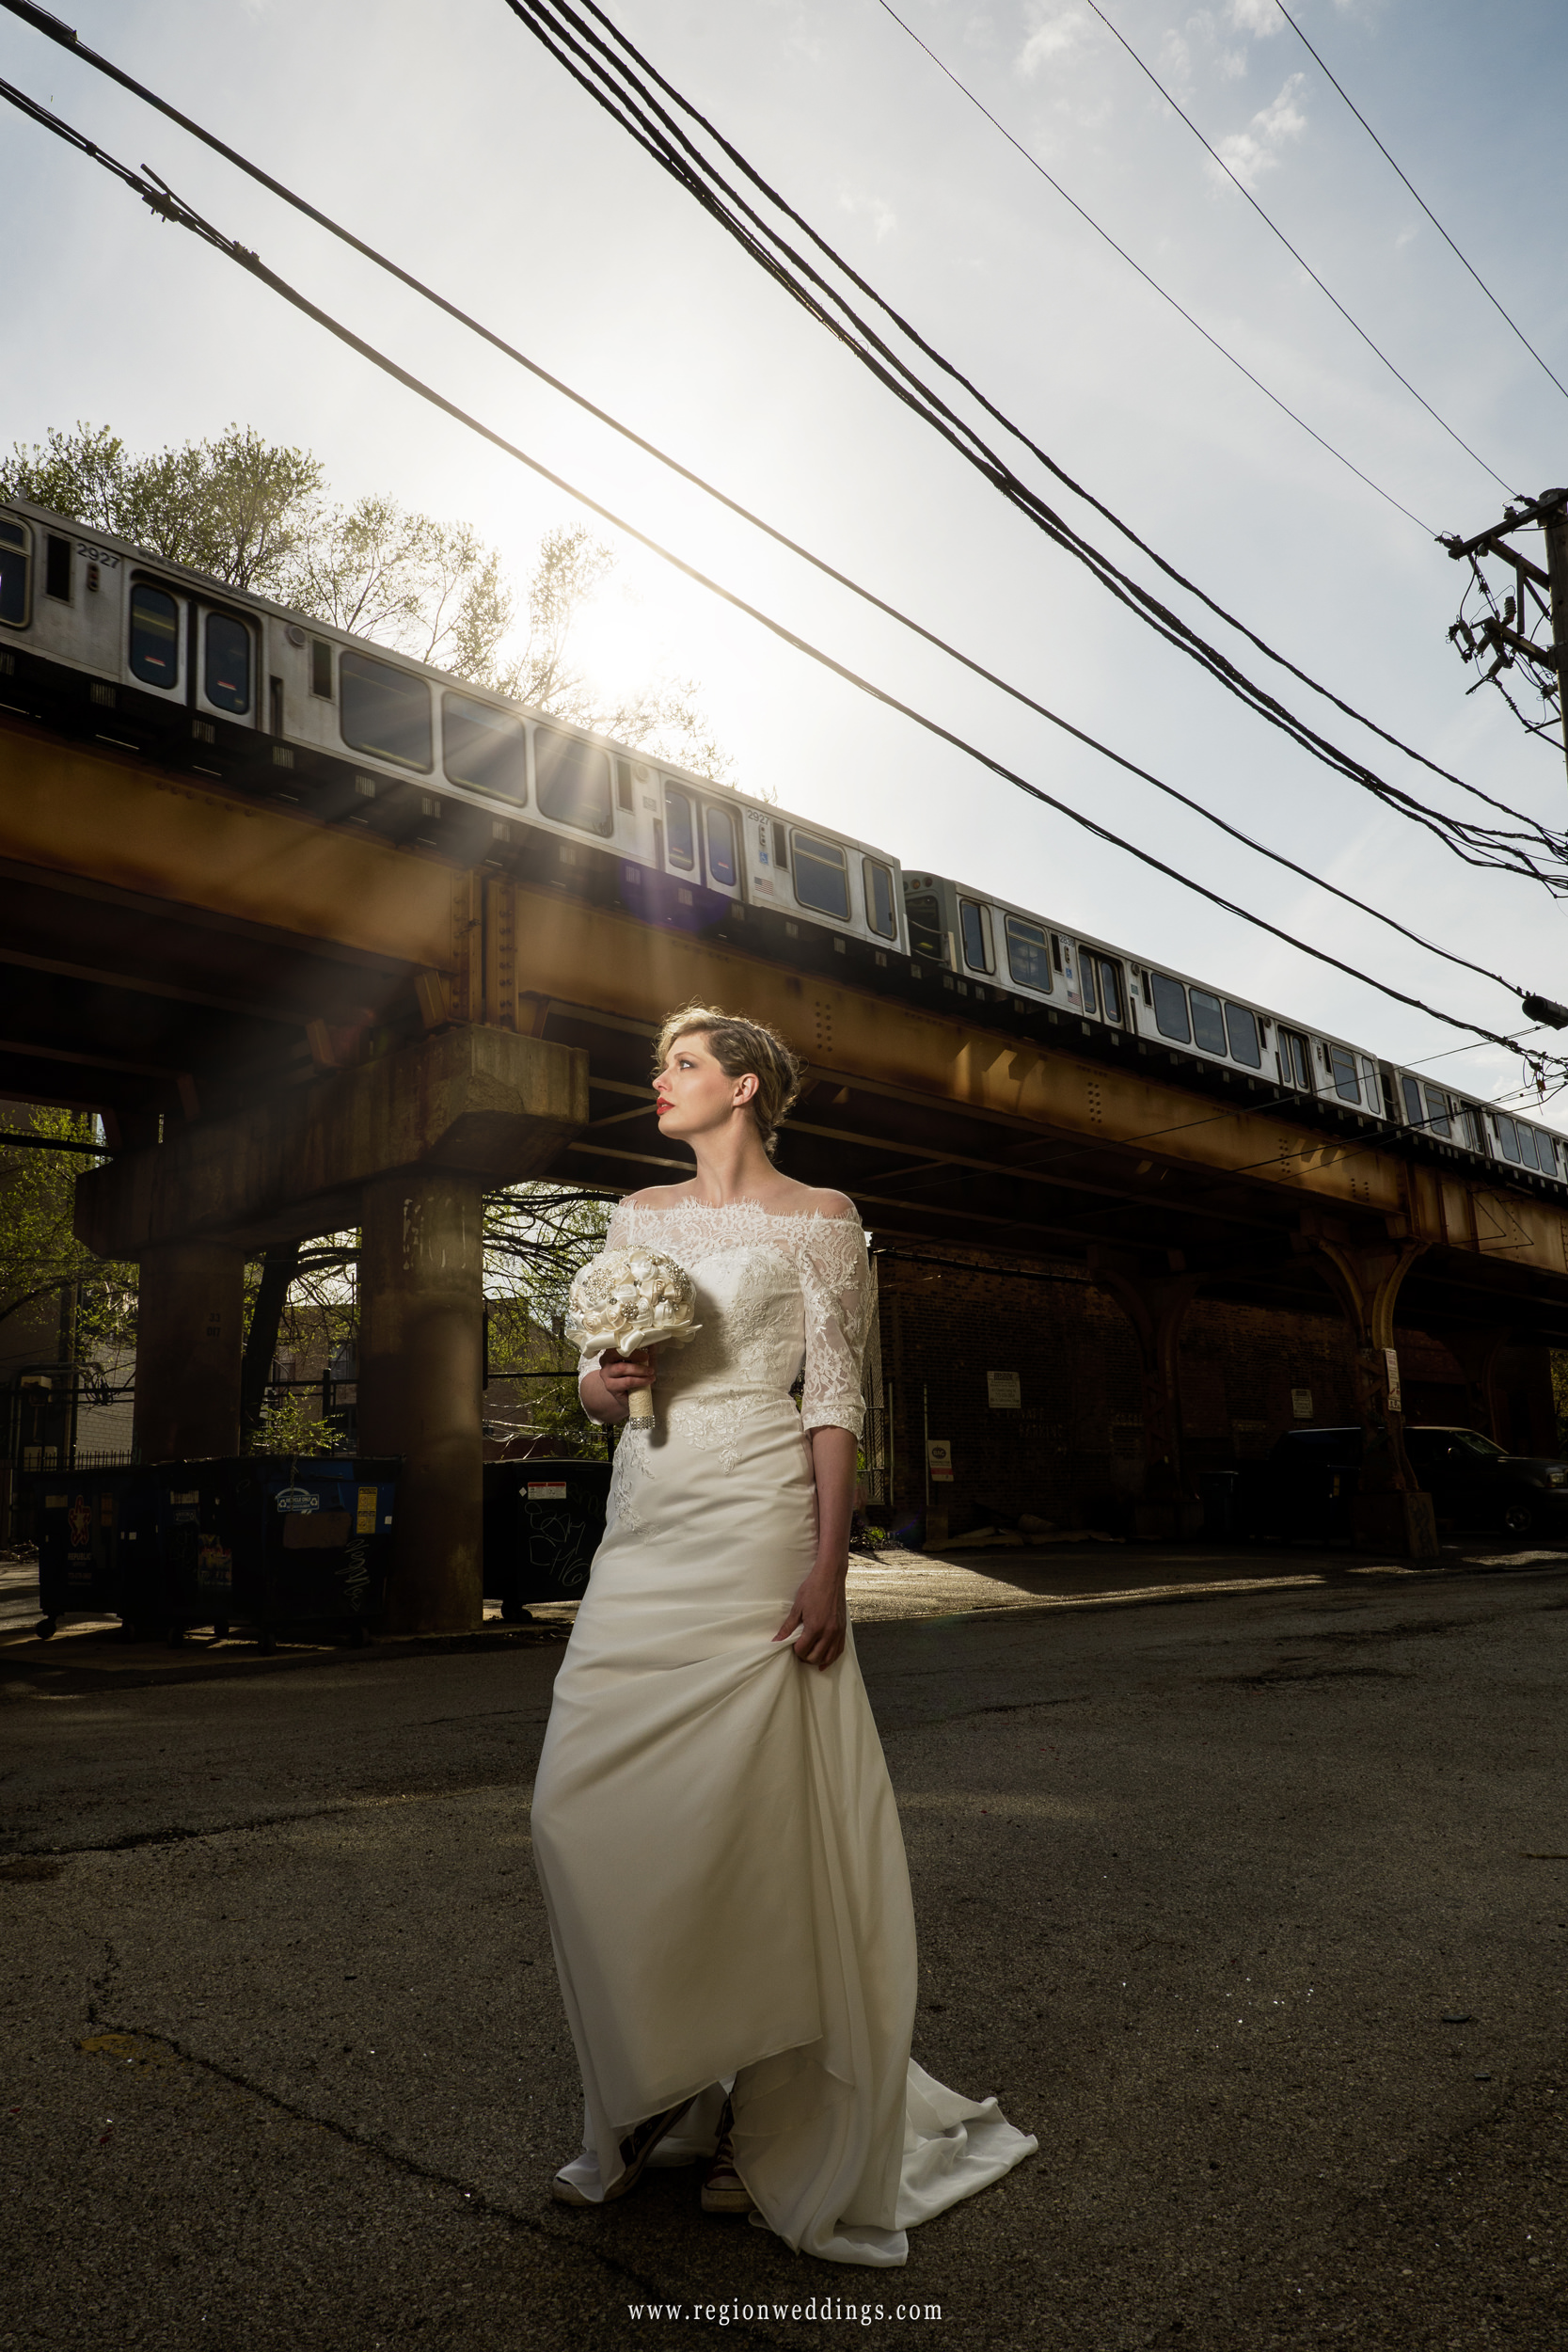 The bride is illuminated by sunlight beneath the L train tracks on the north side of Chicago.